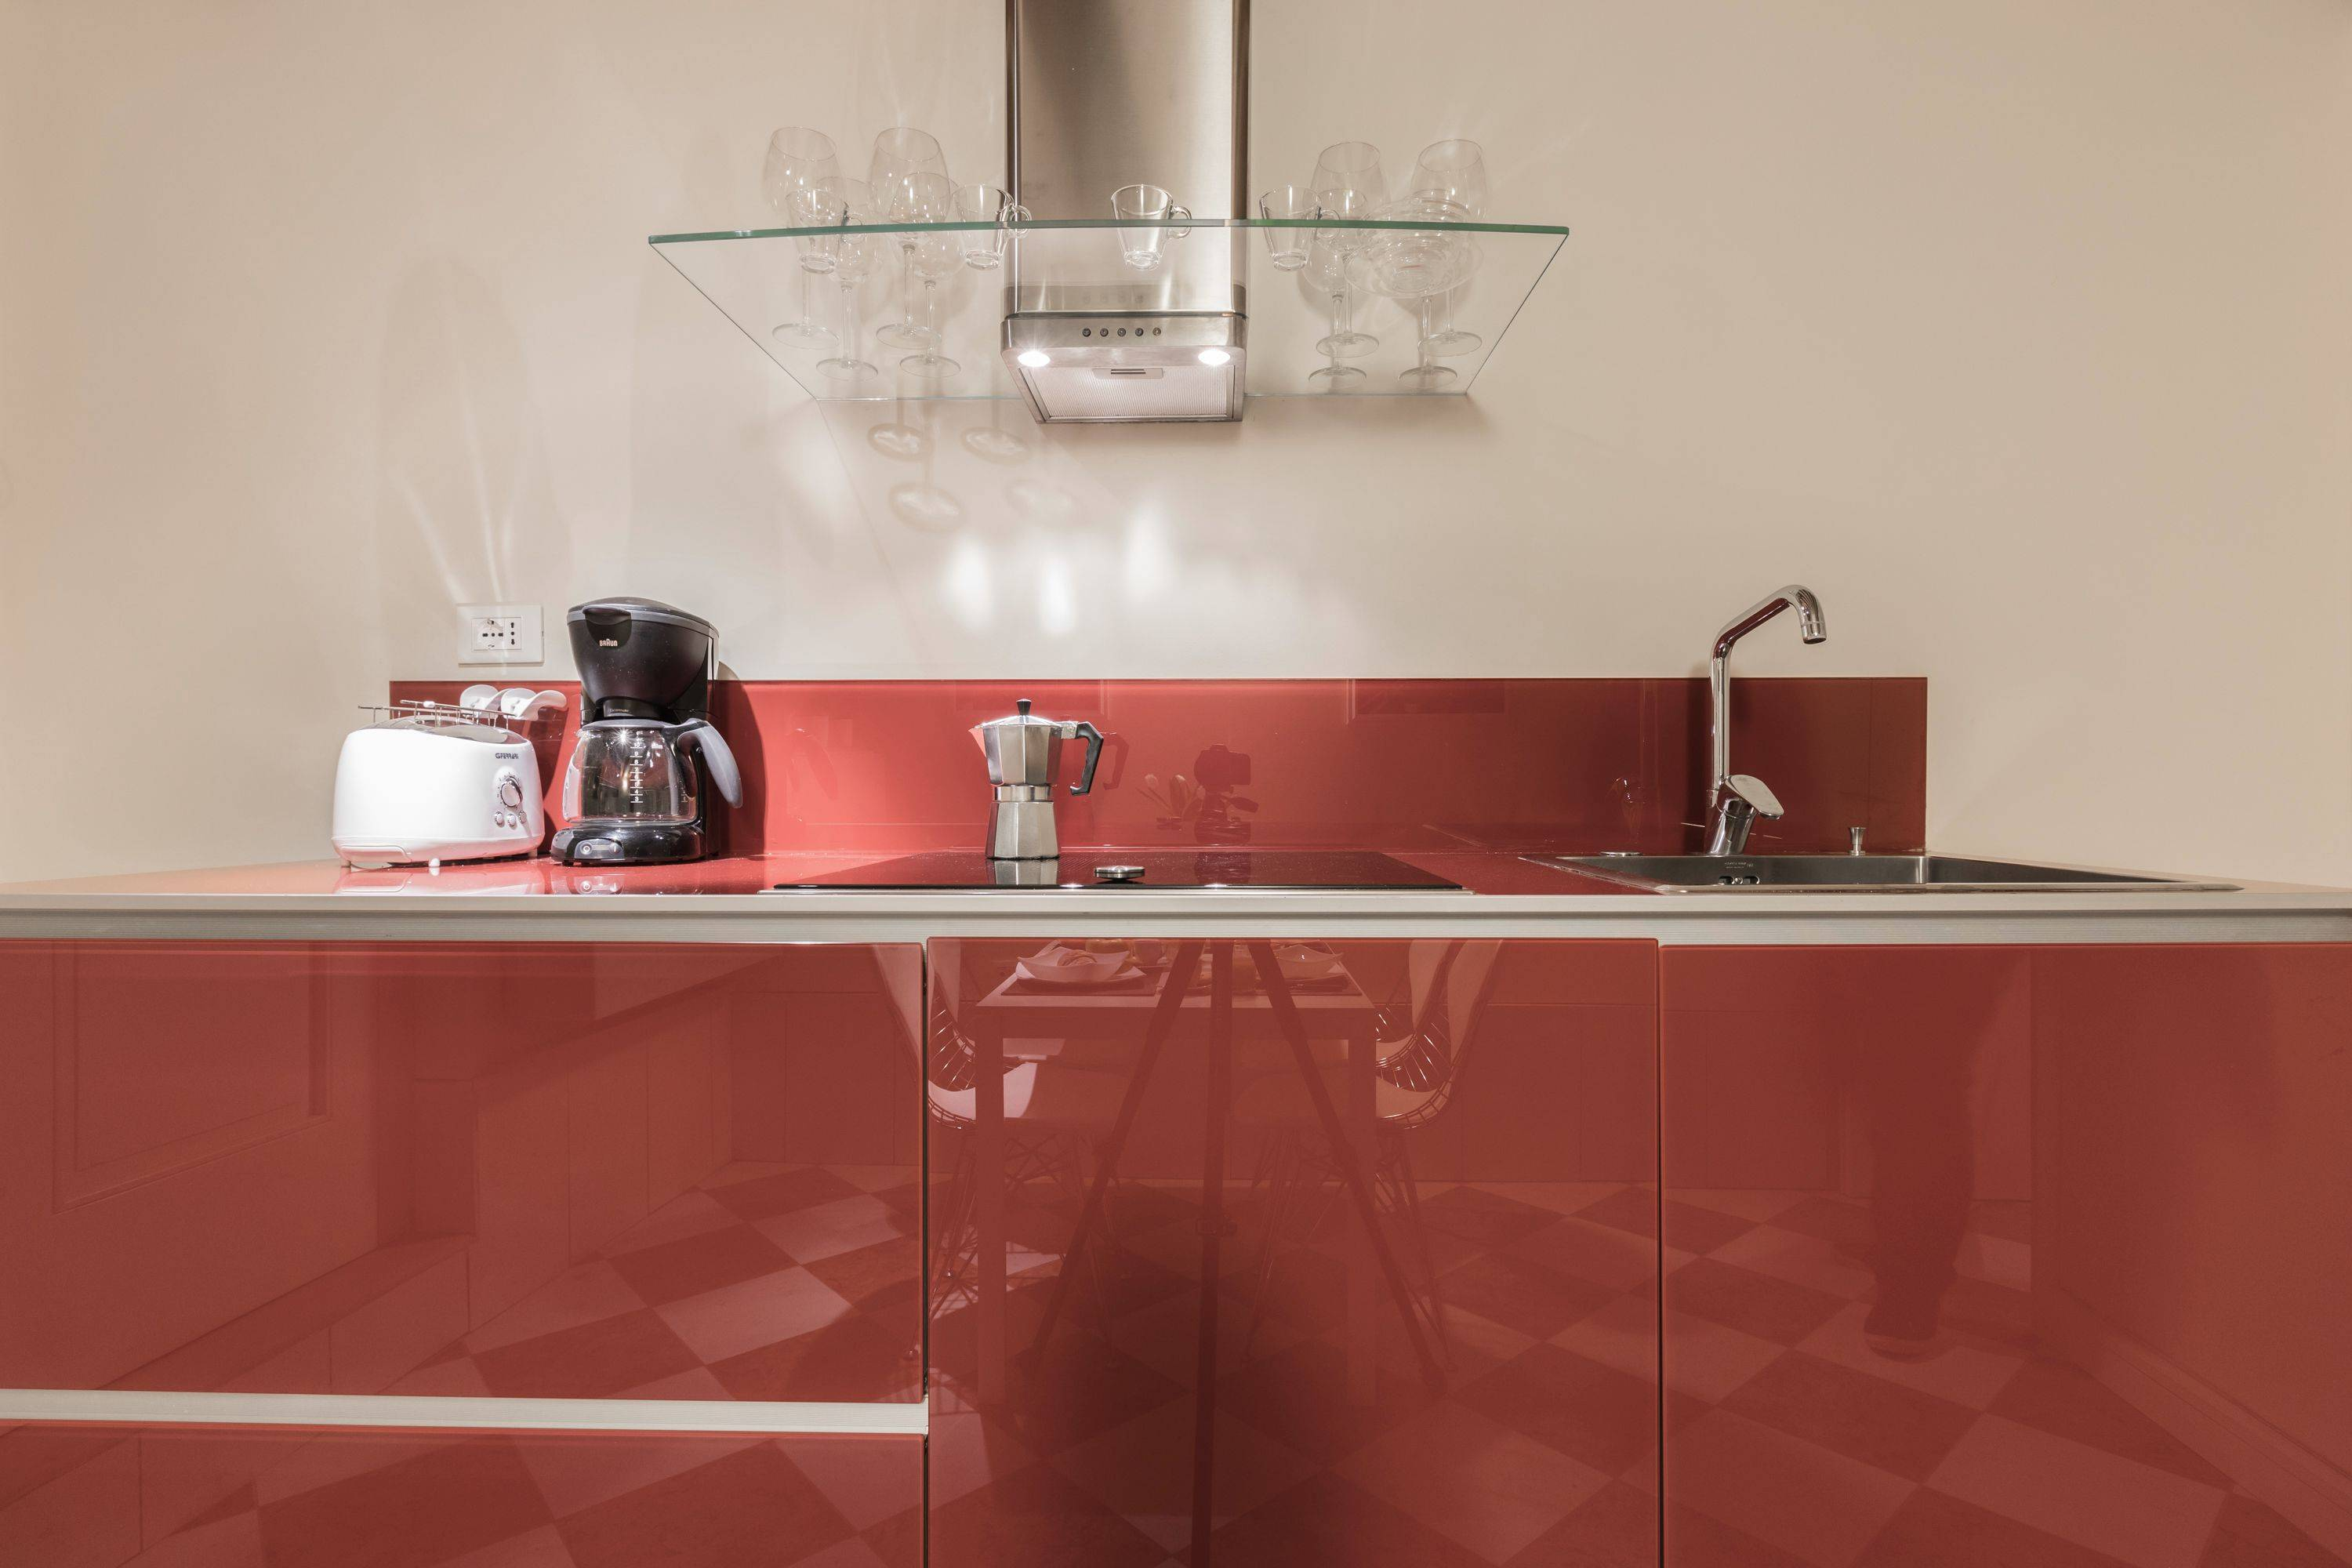 functional and well equipped kitchen